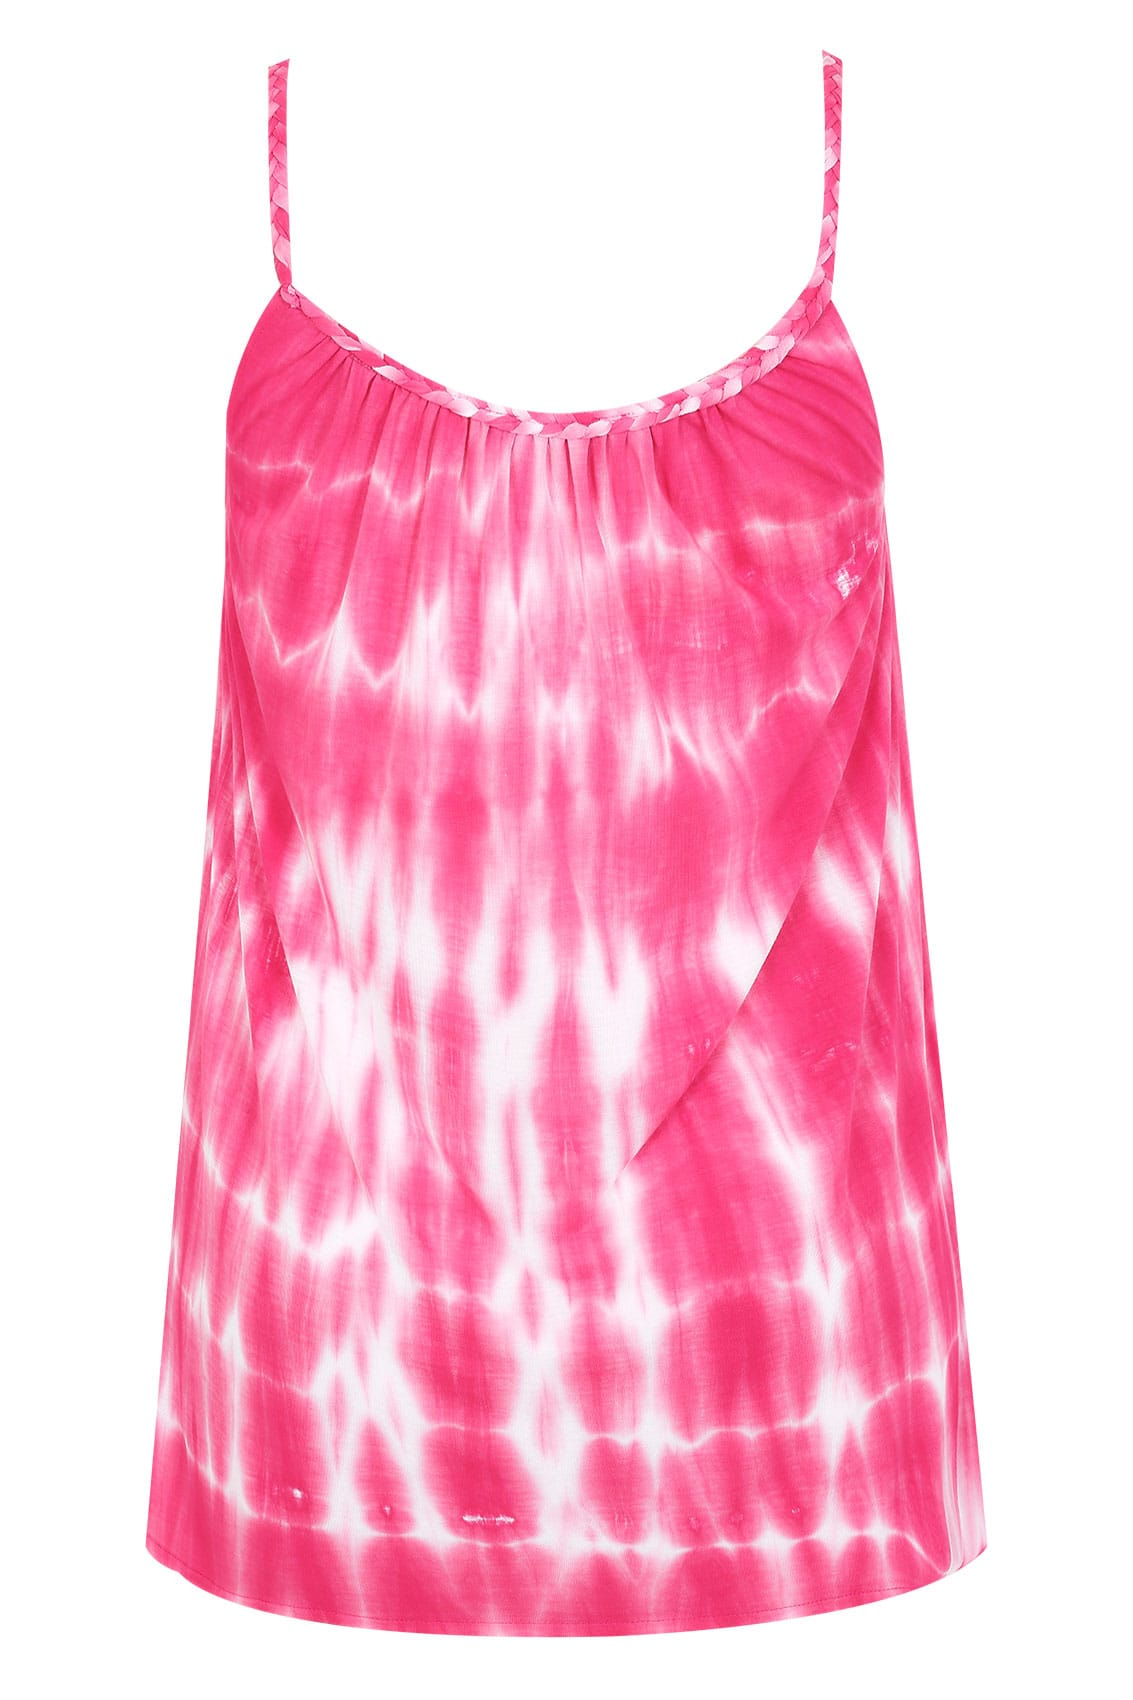 pink amp white tie dye swing vest with plaited straps plus